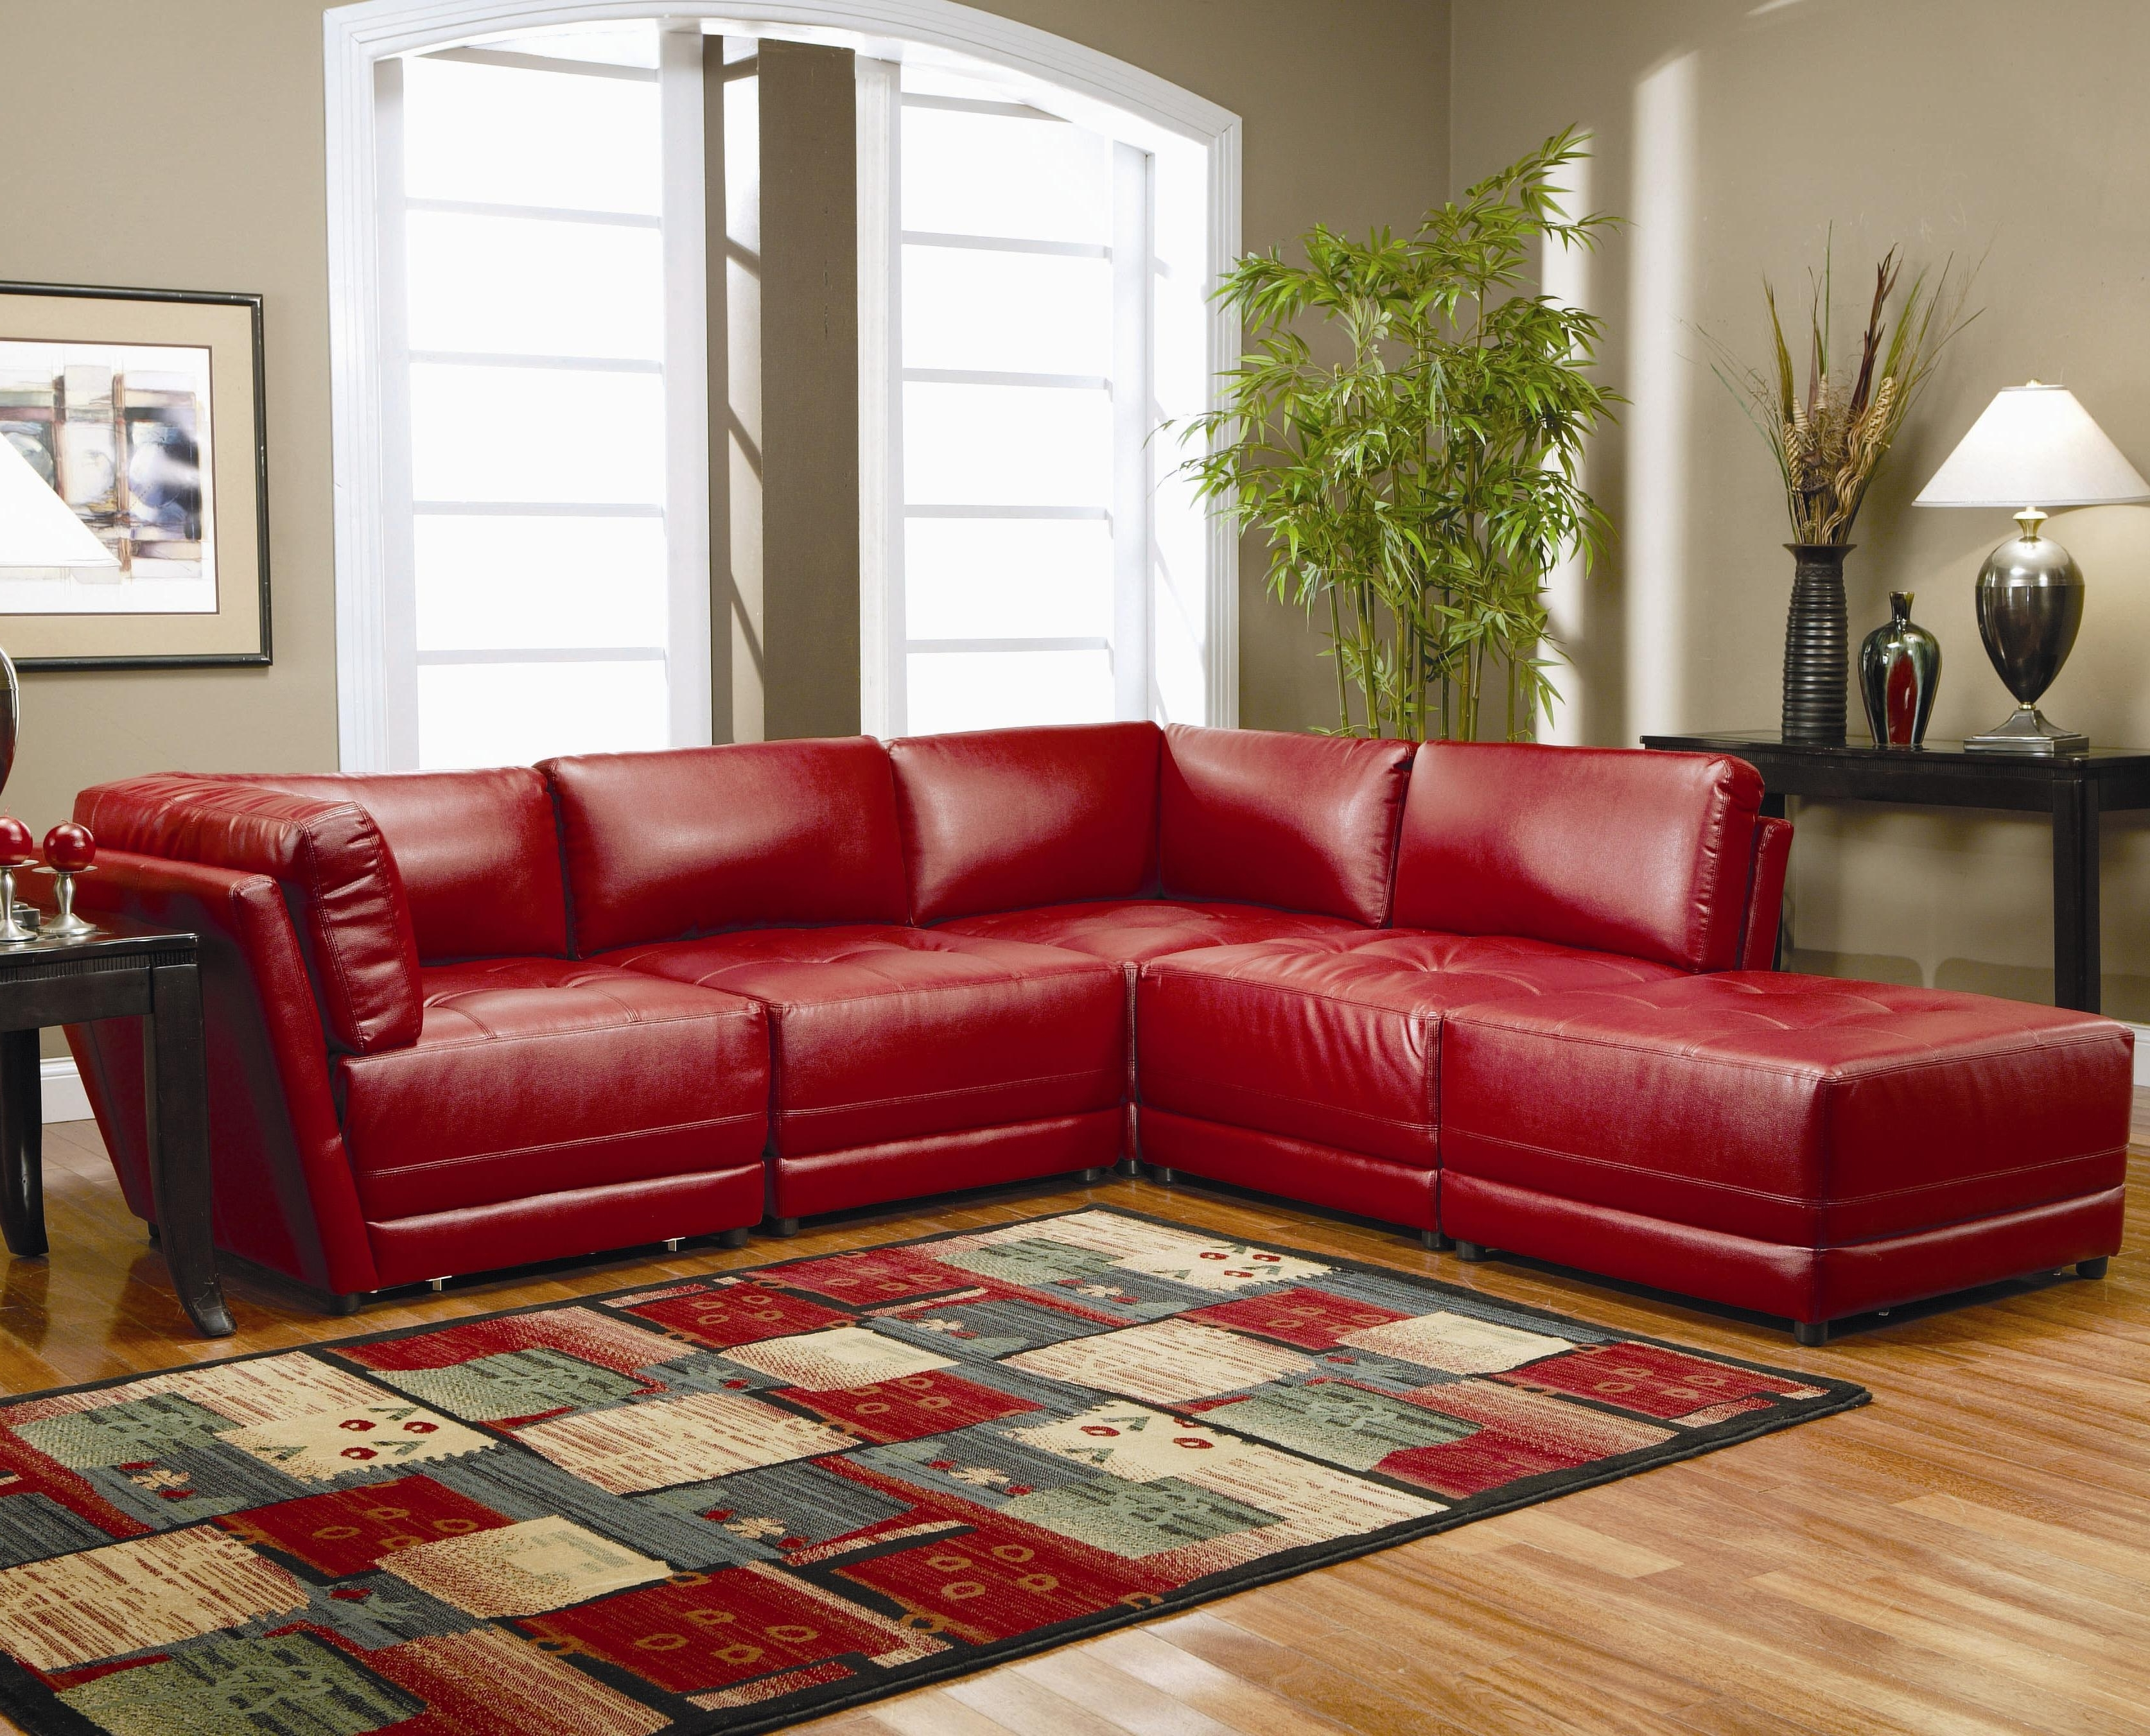 Warm Red Leather Sectional L Shaped Sofa Design Ideas For Living Intended For Latest Small Red Leather Sectional Sofas (View 6 of 15)